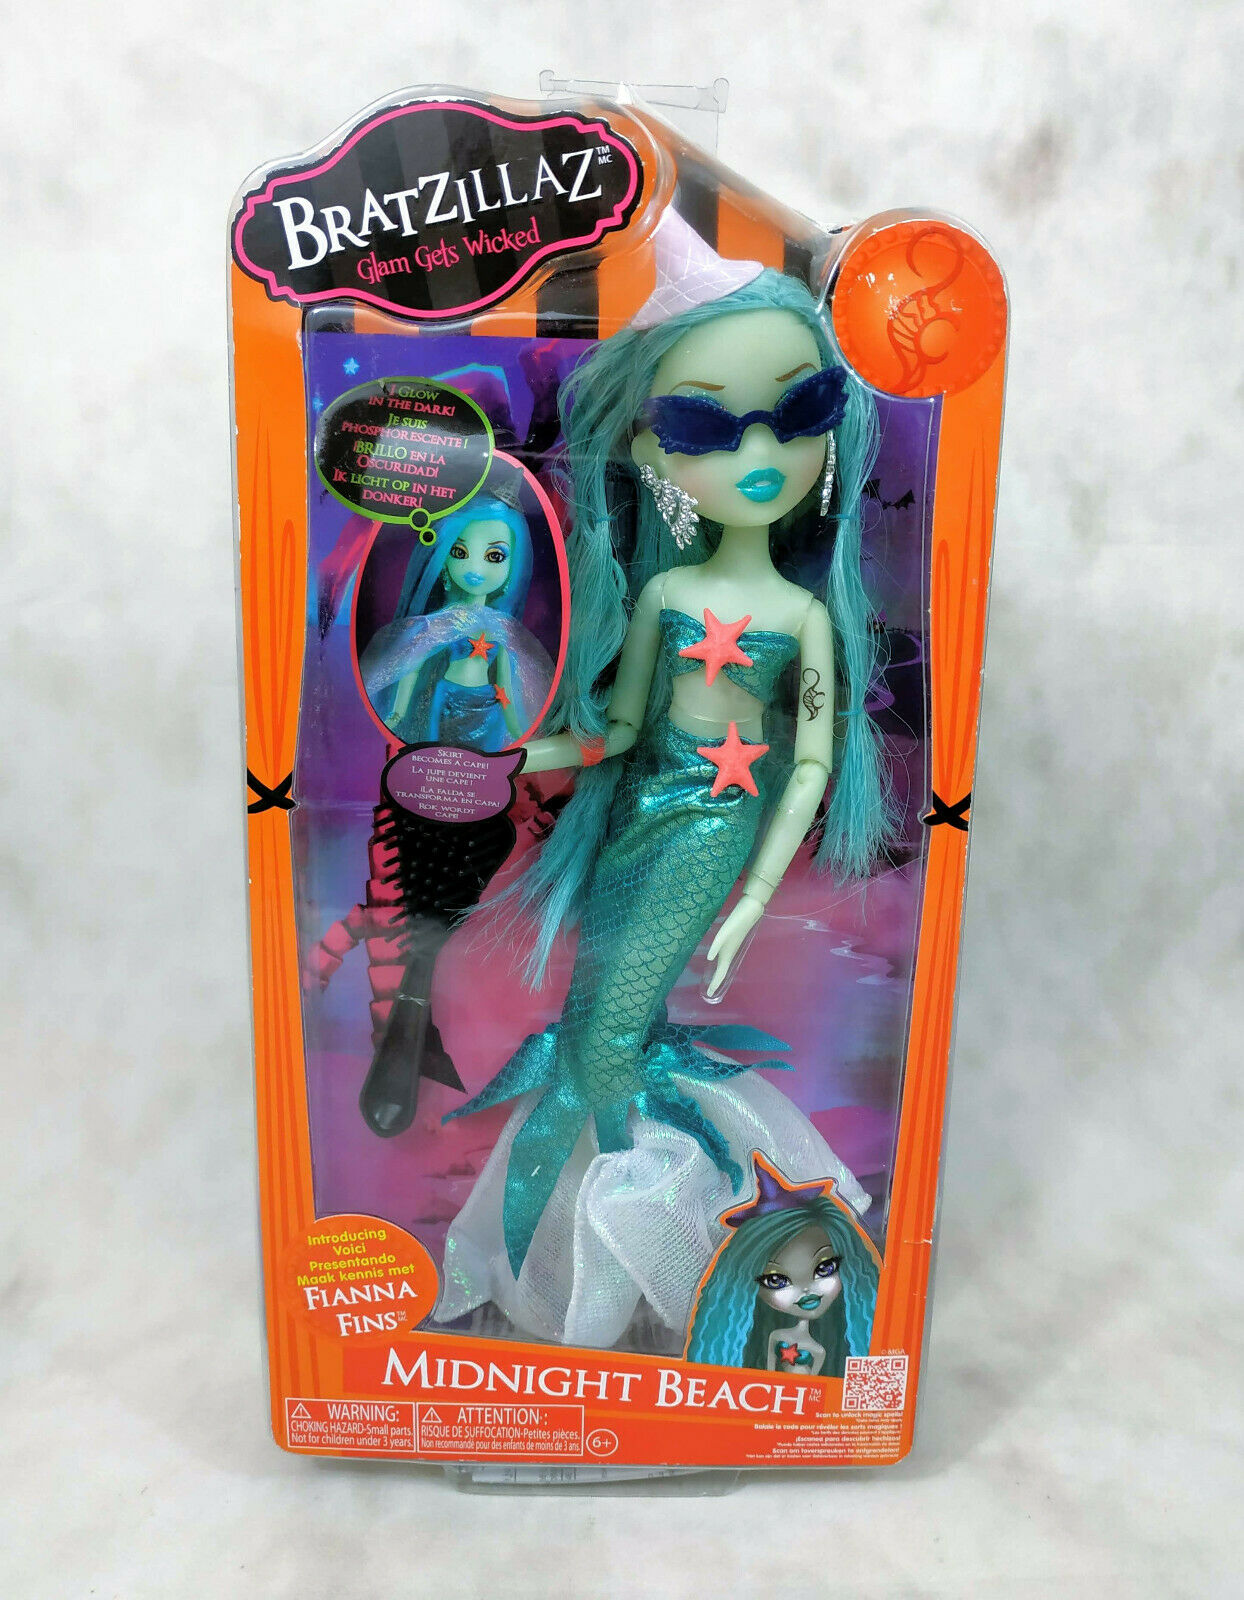 Outlet Online-Shop-Bratzillaz Glam Gets Fianna Fins Midnight ...